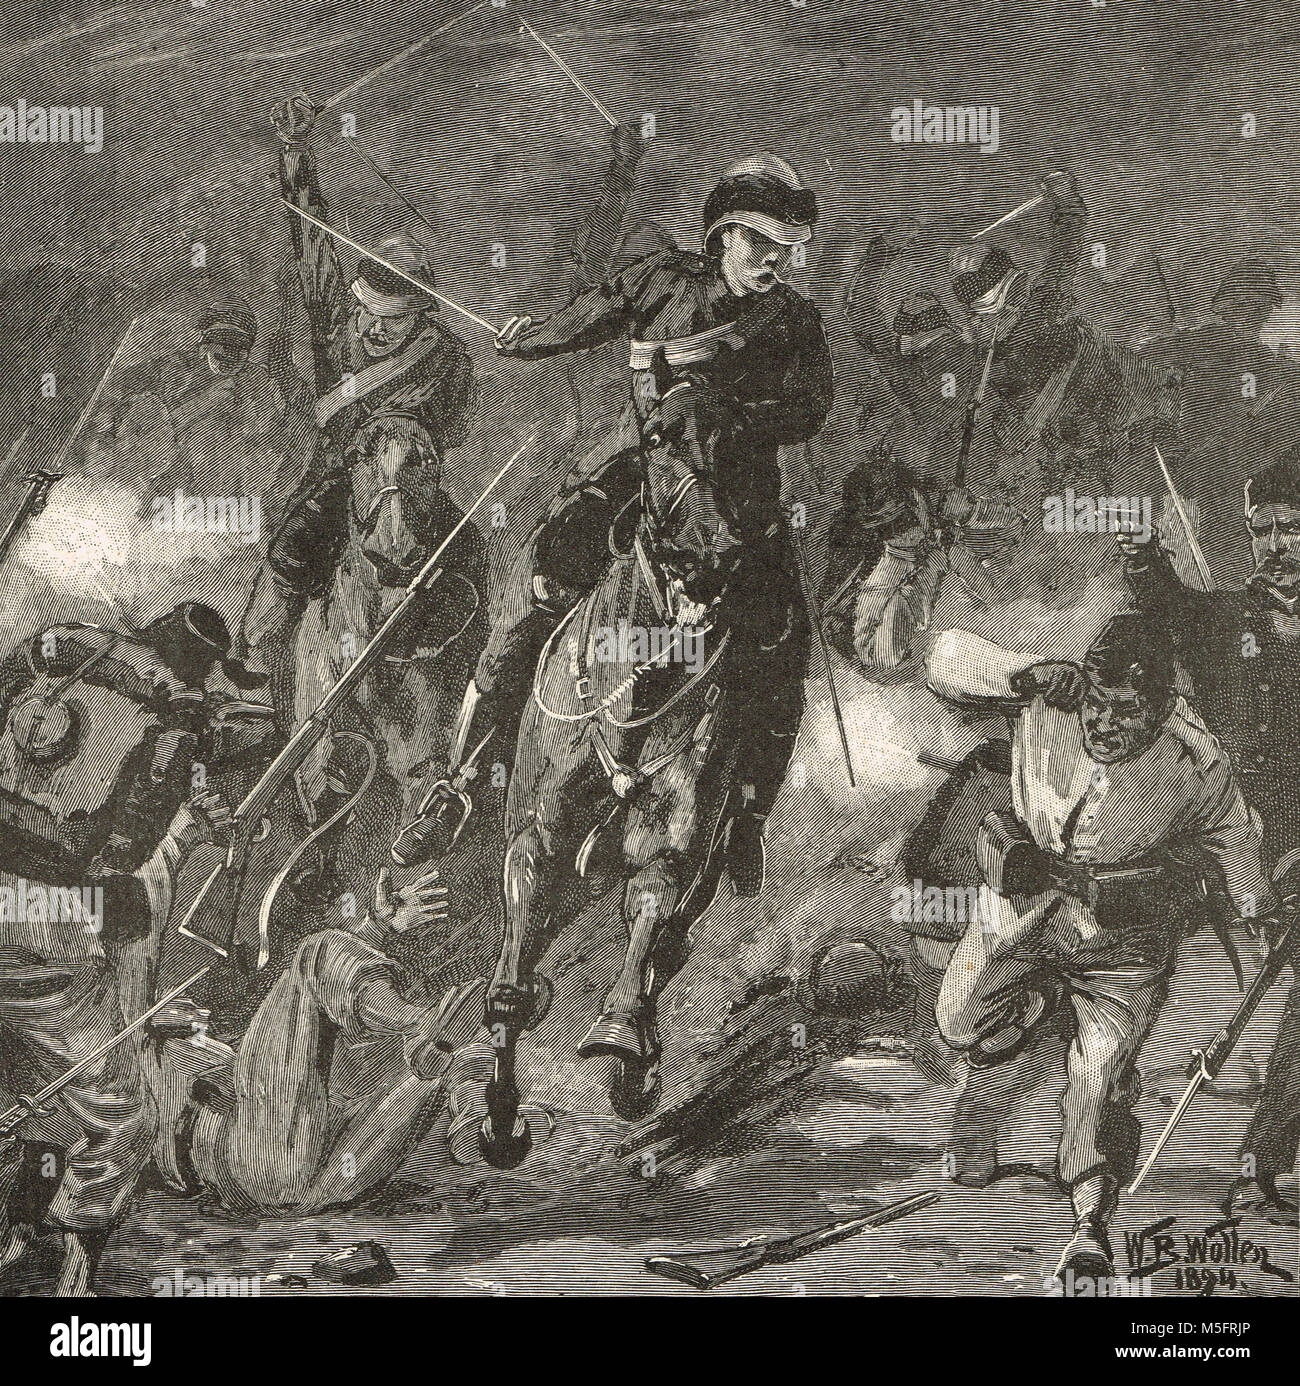 Midnight charge, Battle of Kassassin Lock, Sweet Water Canal, 1882 - Stock Image